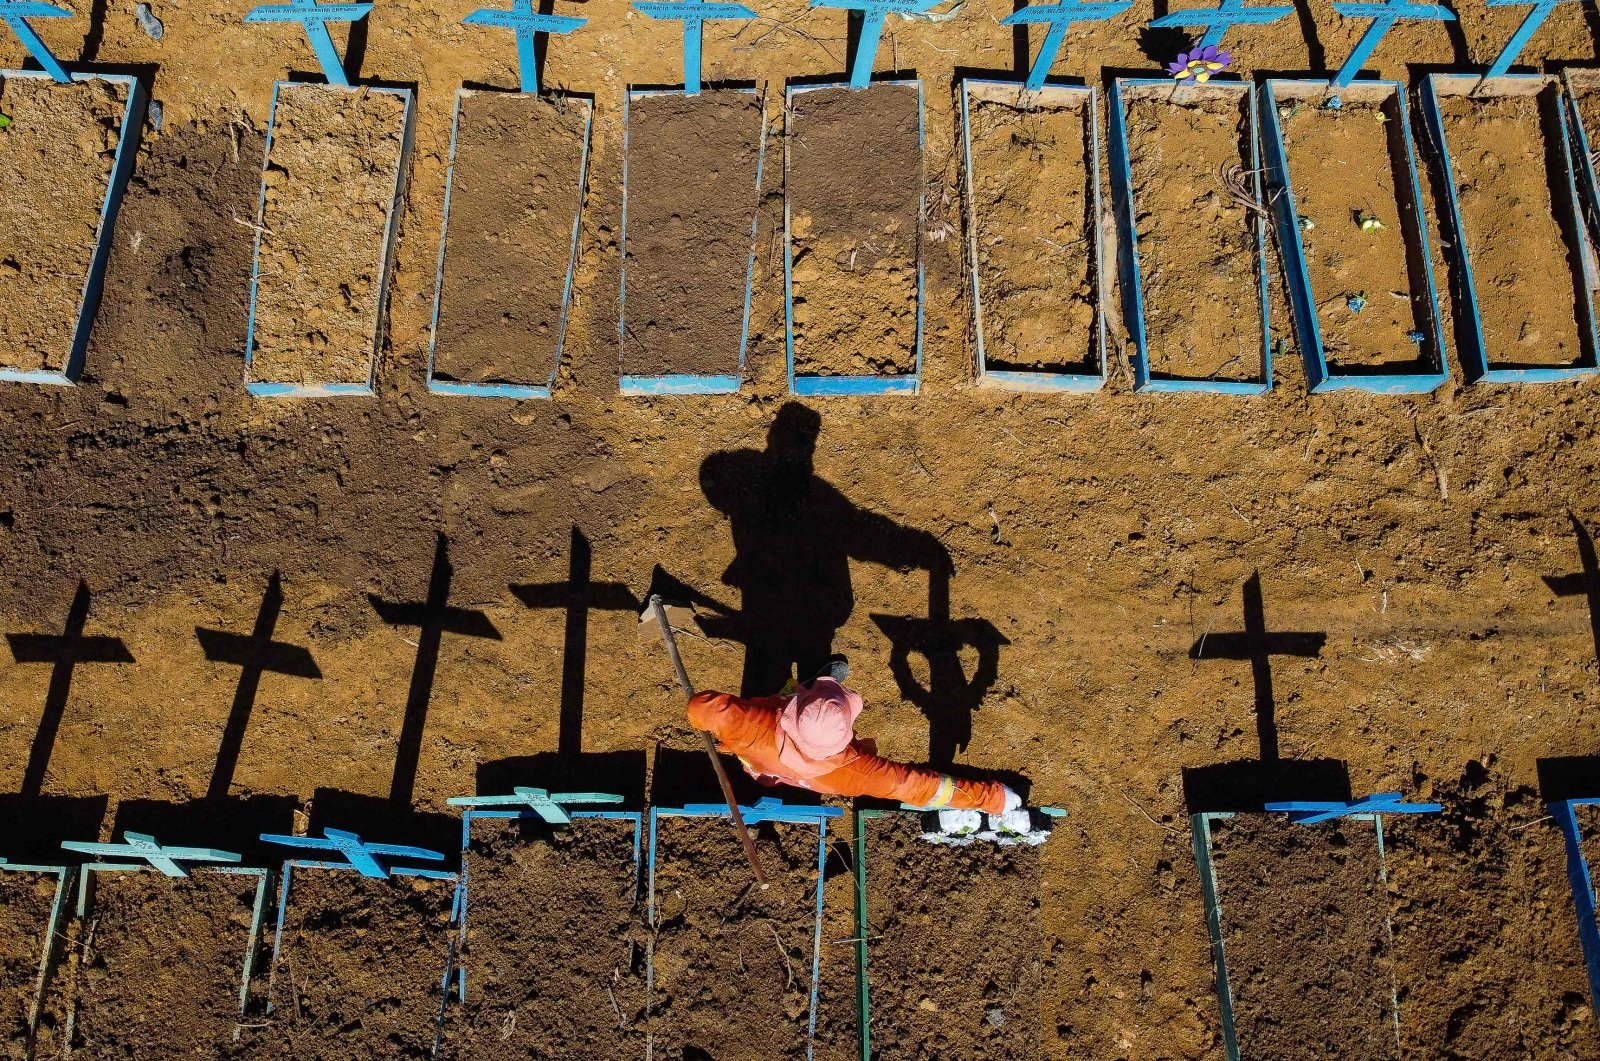 Aerial view showing a gravedigger standing at the Nossa Senhora Aparecida cemetery where COVID-19 victims are buried daily, in the neighborhood of Taruma, Manaus, Brazil, June 2, 2020. (AFP Photo)